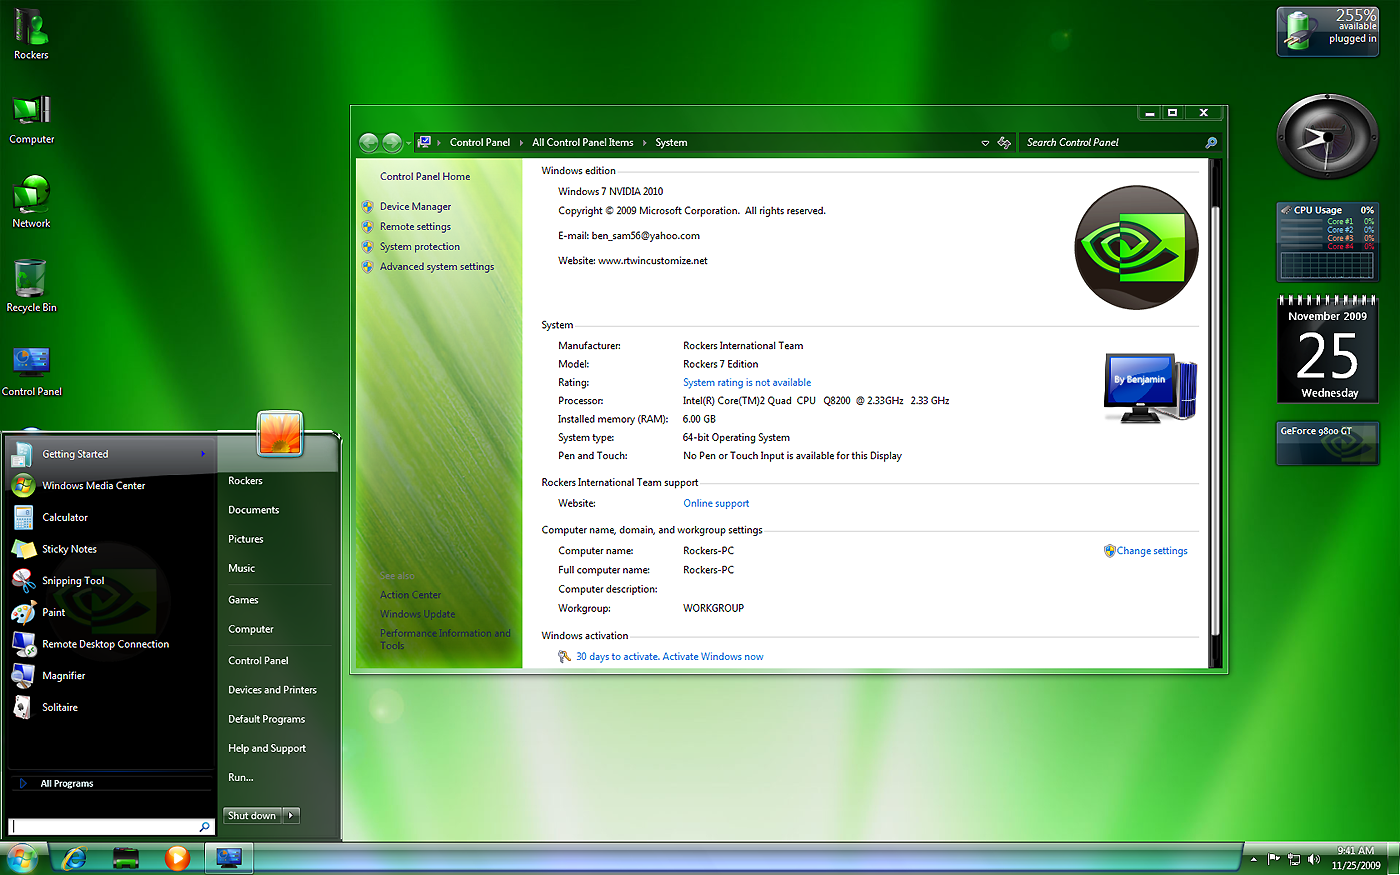 Windows 7 nvidia 2017 x86